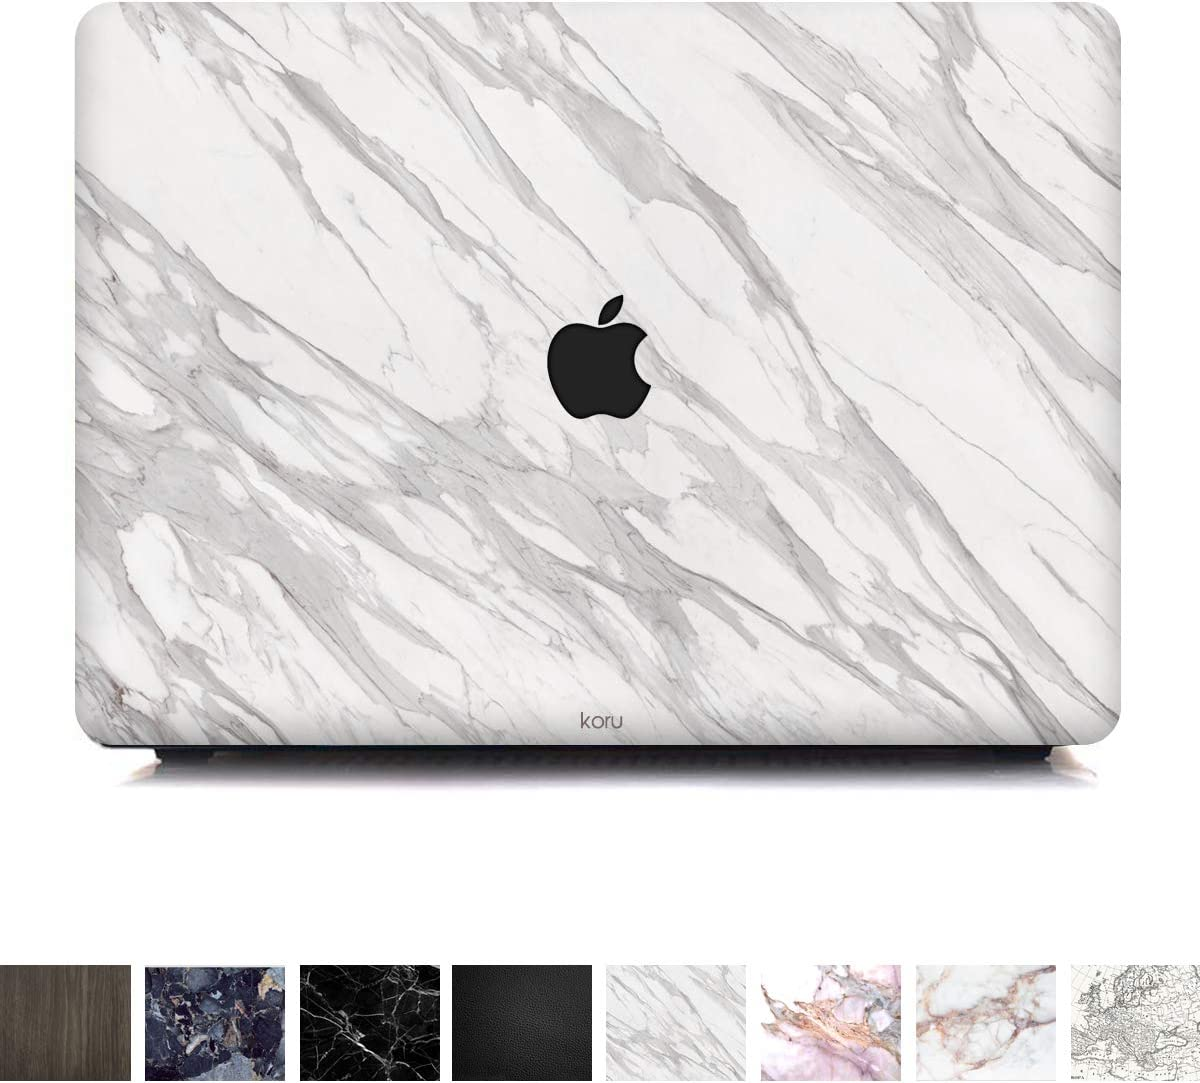 Koru Premium Minimalist White Marble Vinyl Decal Skin Sticker Case Cover for MacBook Pro 13-inch with/Without Touch Bar (2016 & 2017 Release)